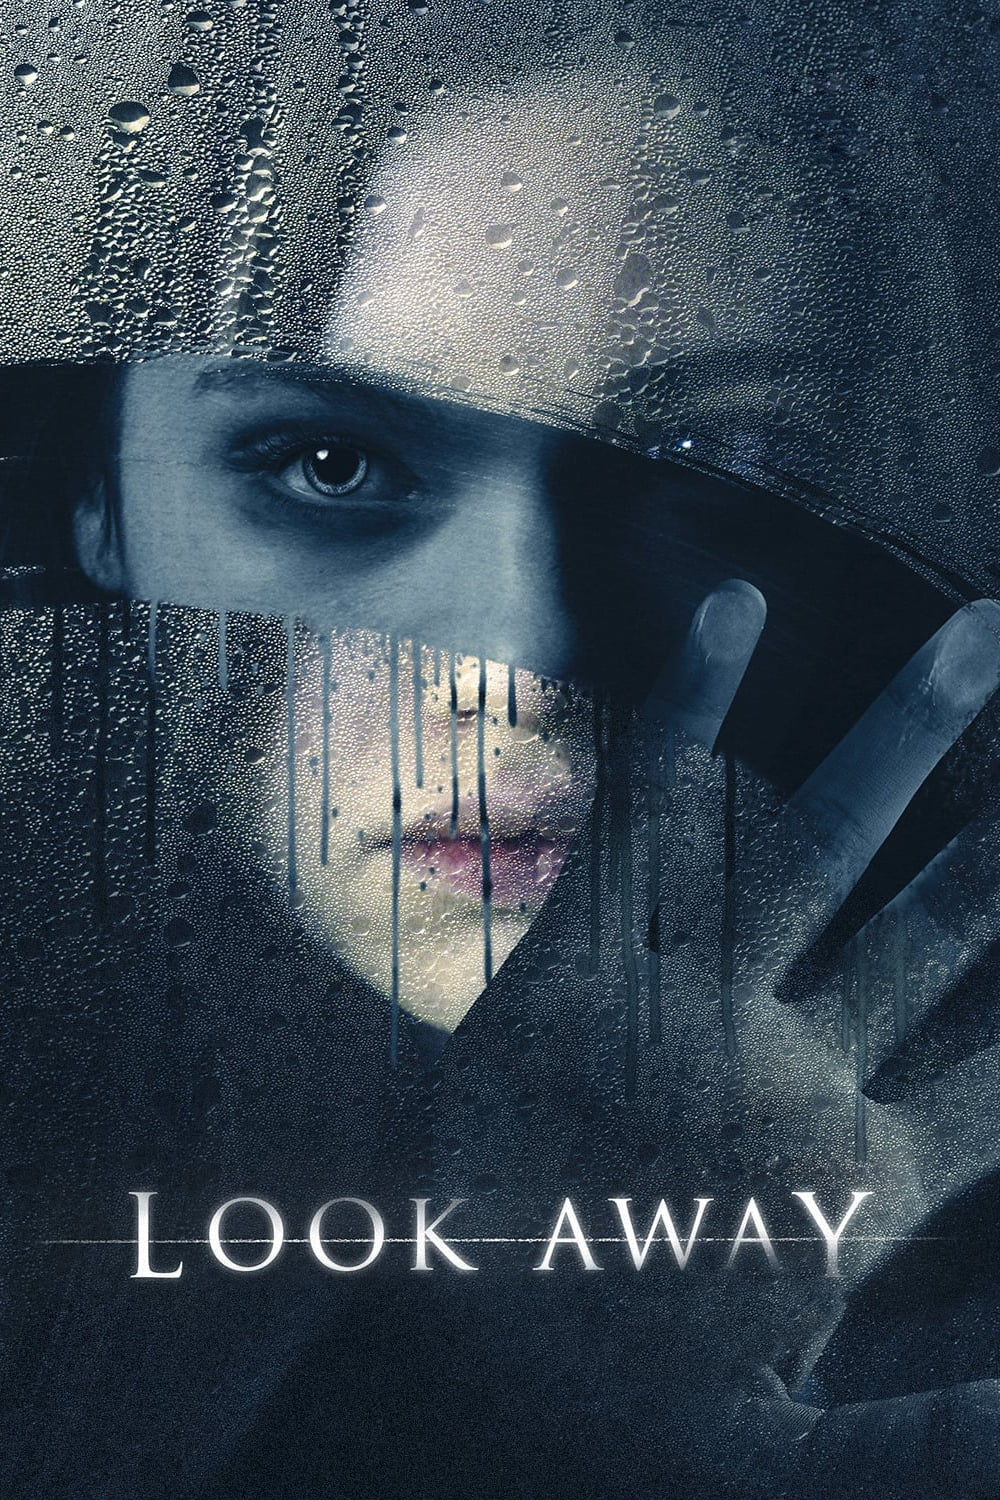 image for Look Away